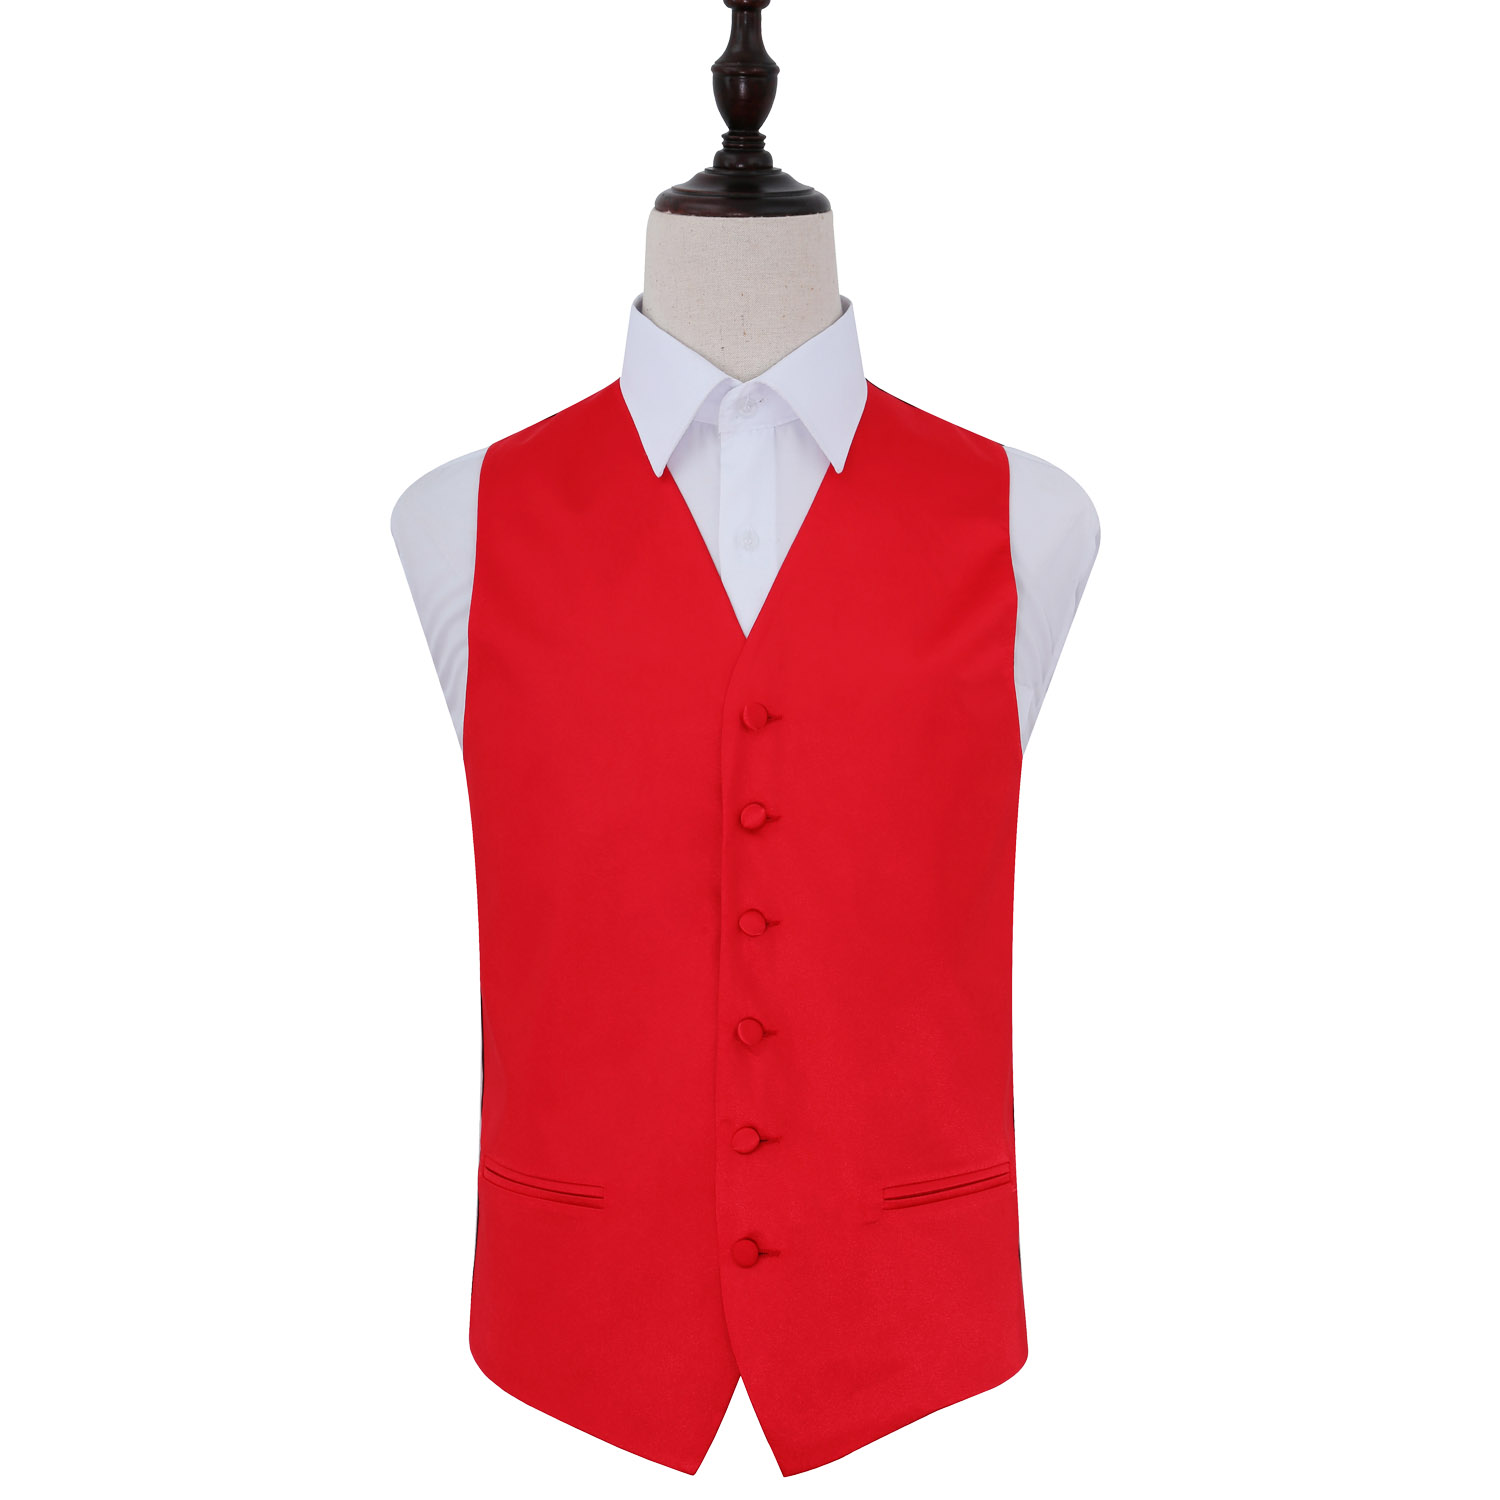 Free Shipping on Many Items! Shop from the world's largest selection and best deals for NEXT Waistcoat Waistcoats for Men. Shop with confidence on eBay!